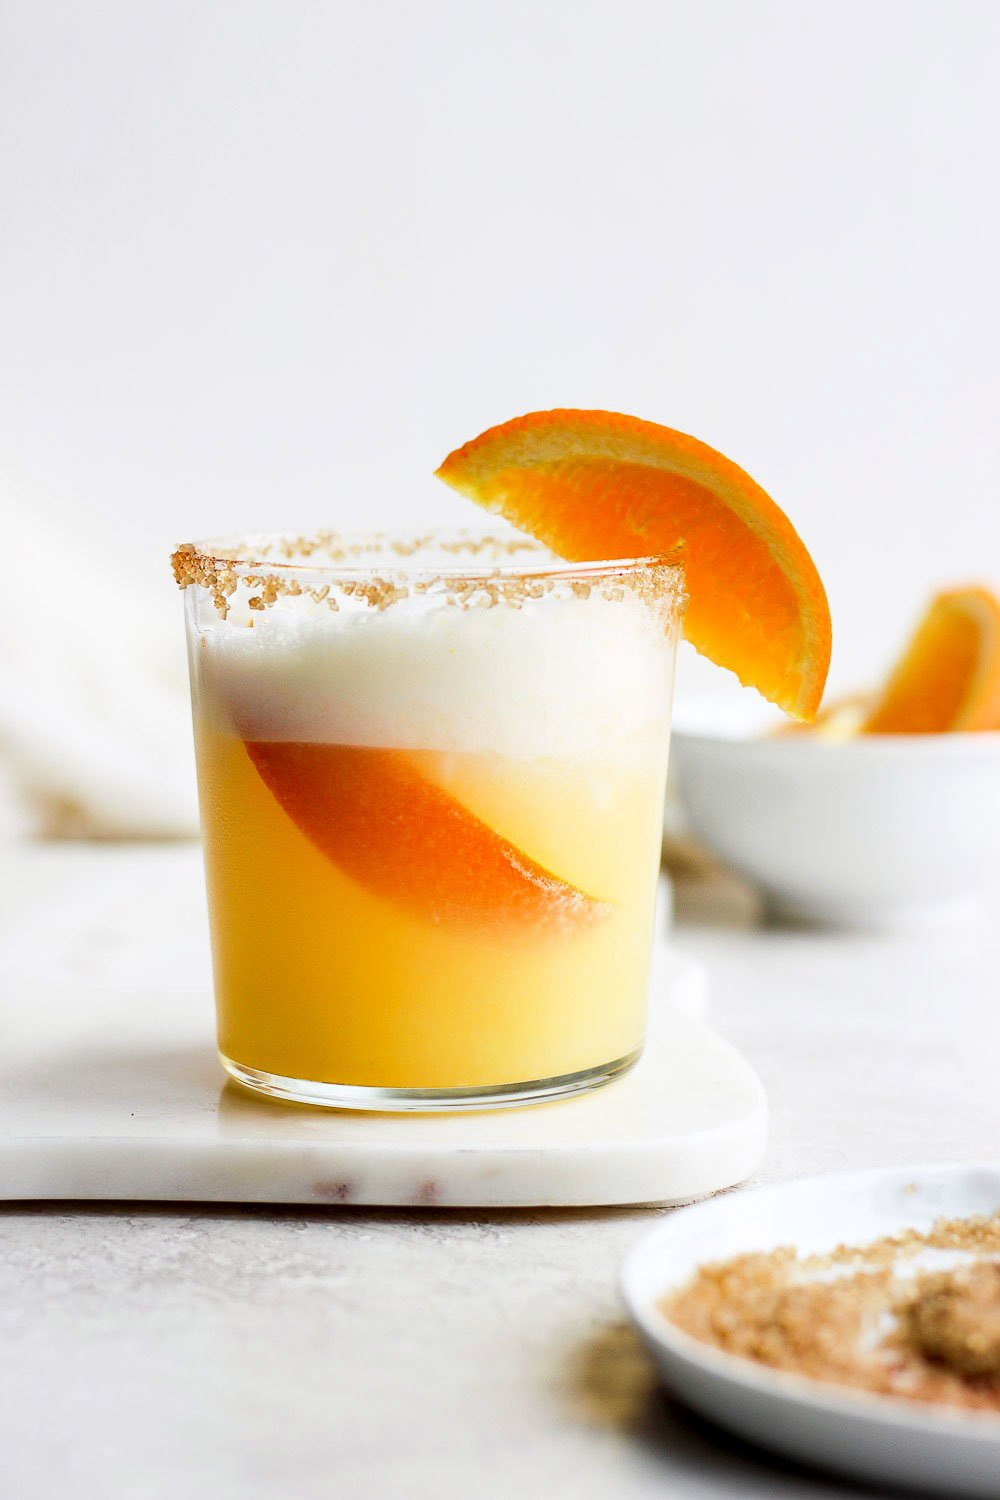 Orange cocktail in a glass